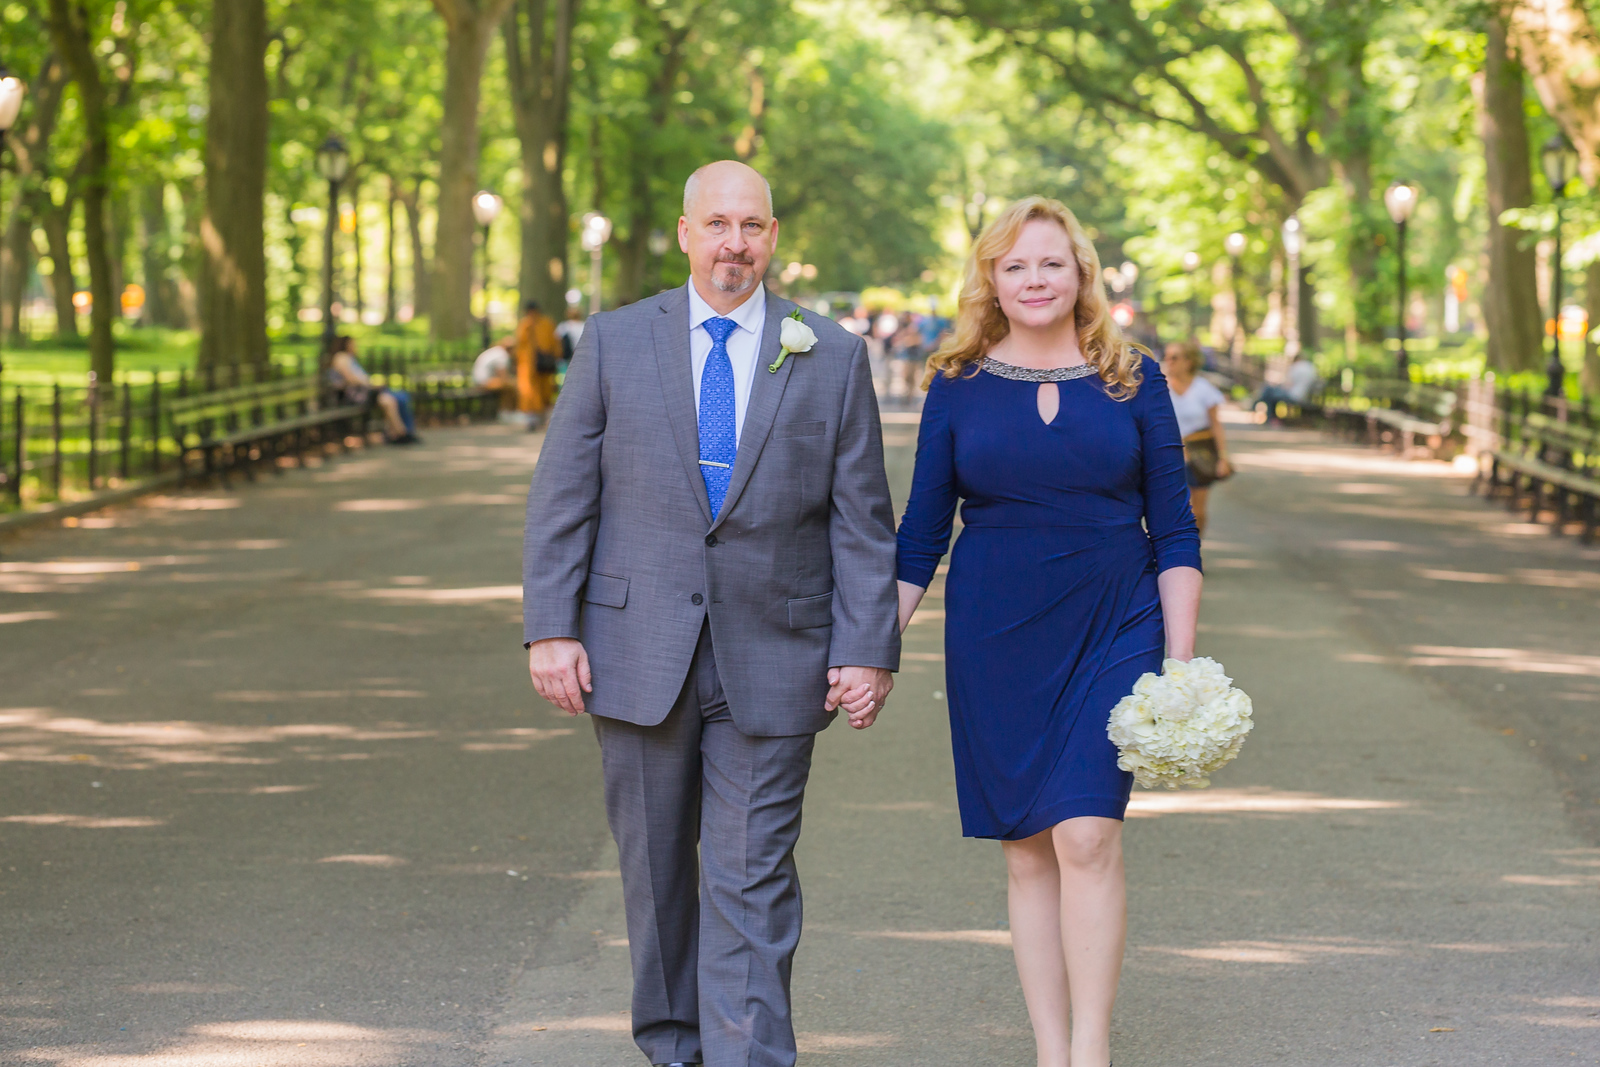 Central Park Elopement - Kyle & Tammy-80